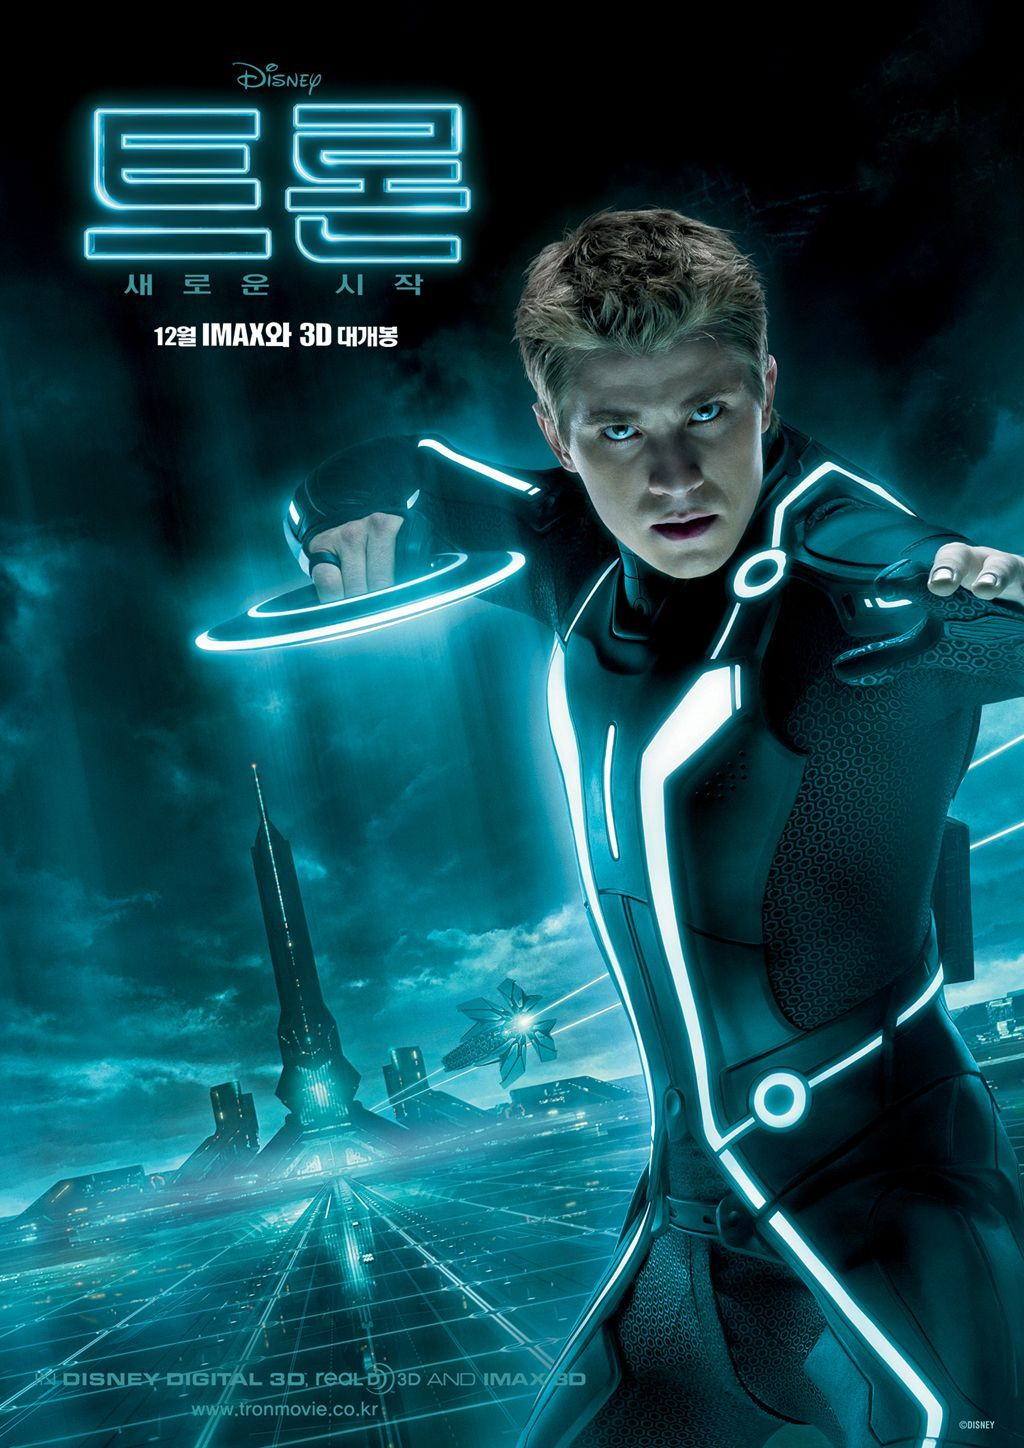 extra large movie poster image for tron legacy (#13 of 26) | movie